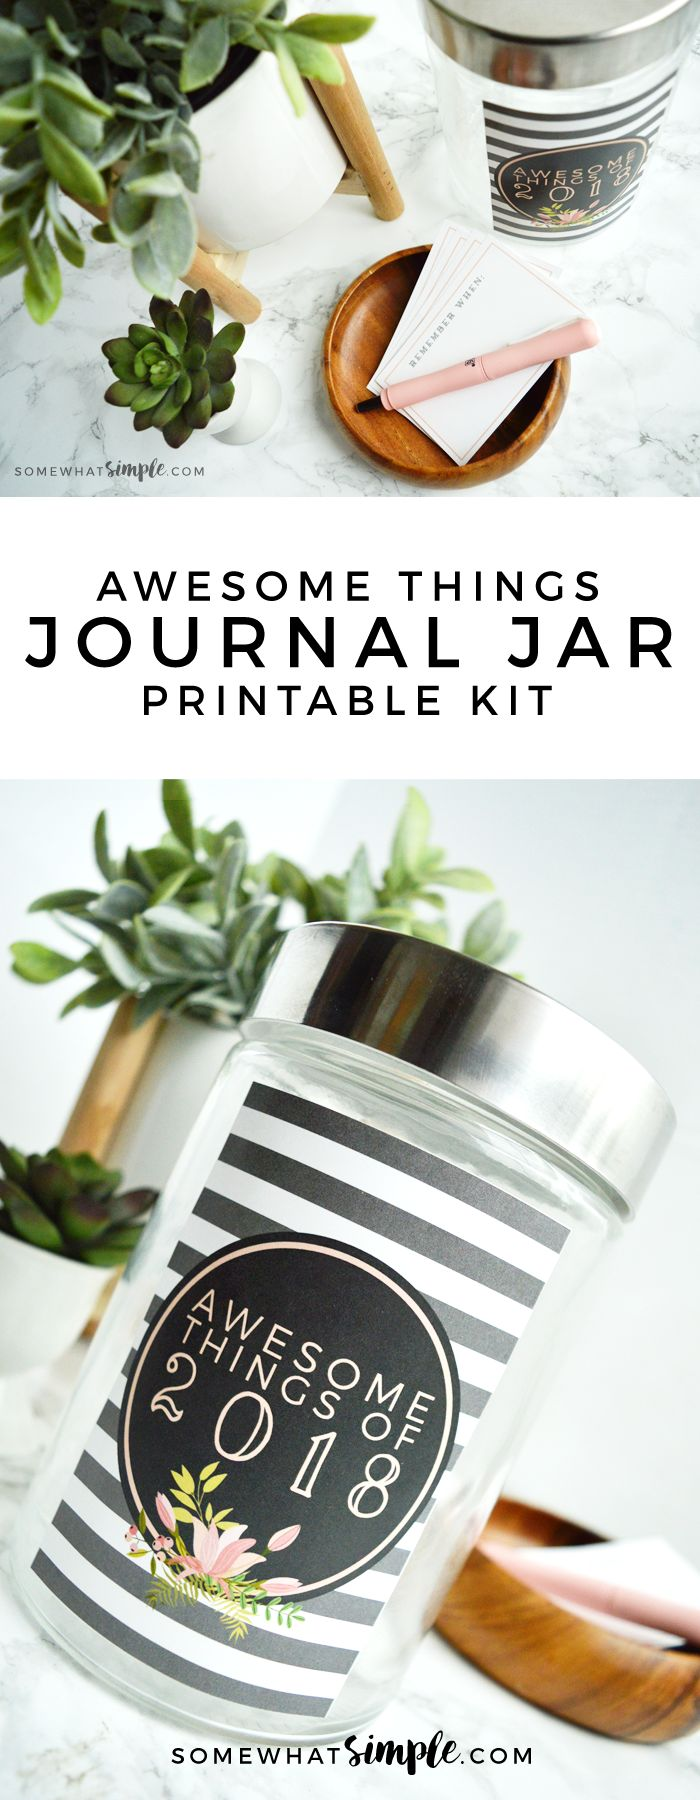 Hang on to your hats, we've put together our 2018 Journal Jar Kit with a label + journaling cards! (And they turned out darling!)